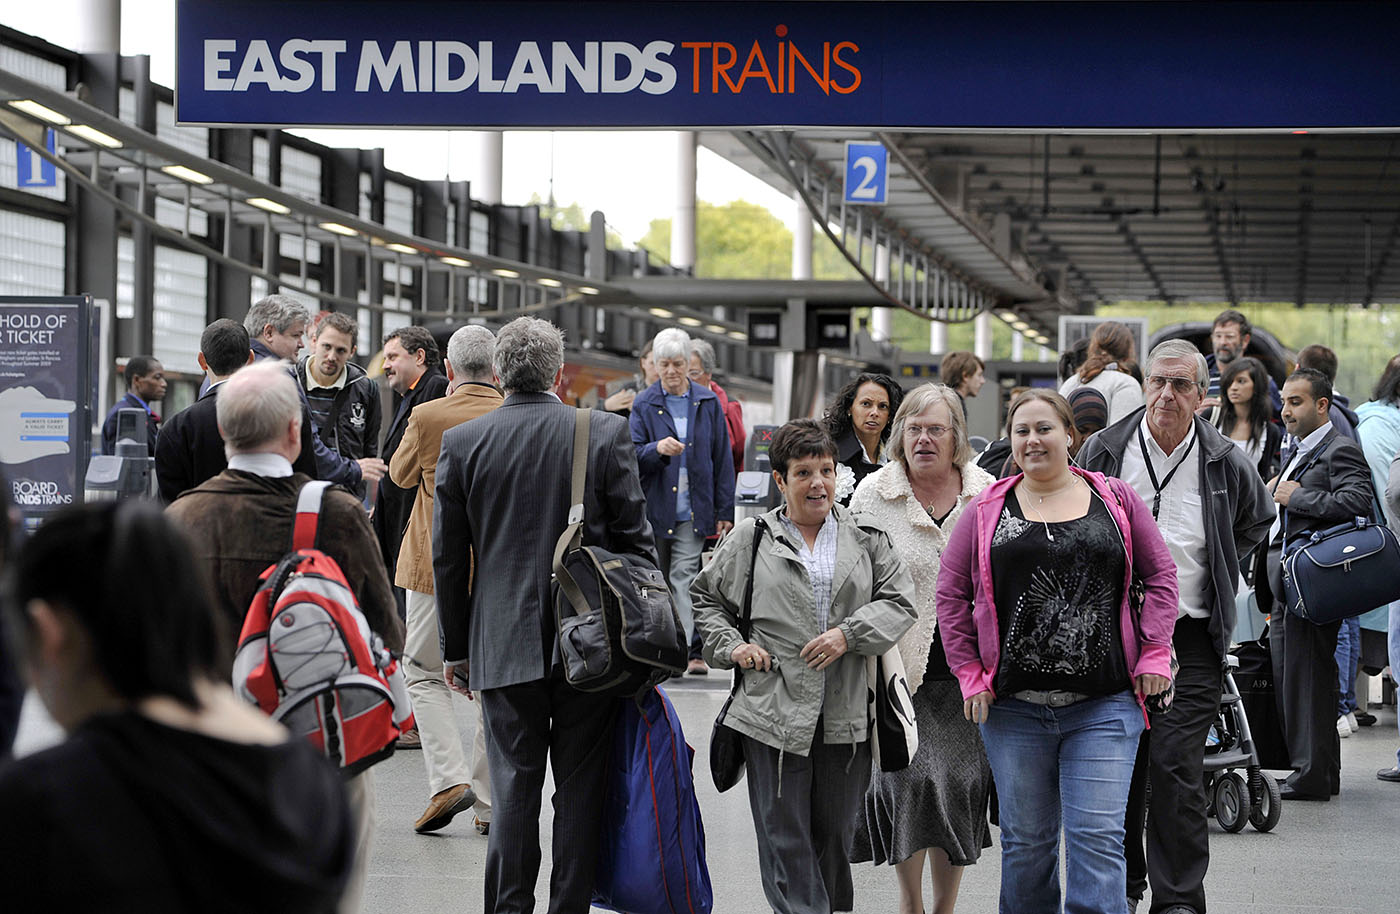 Passengers arrive on the East Midlands train services at St Pancras International